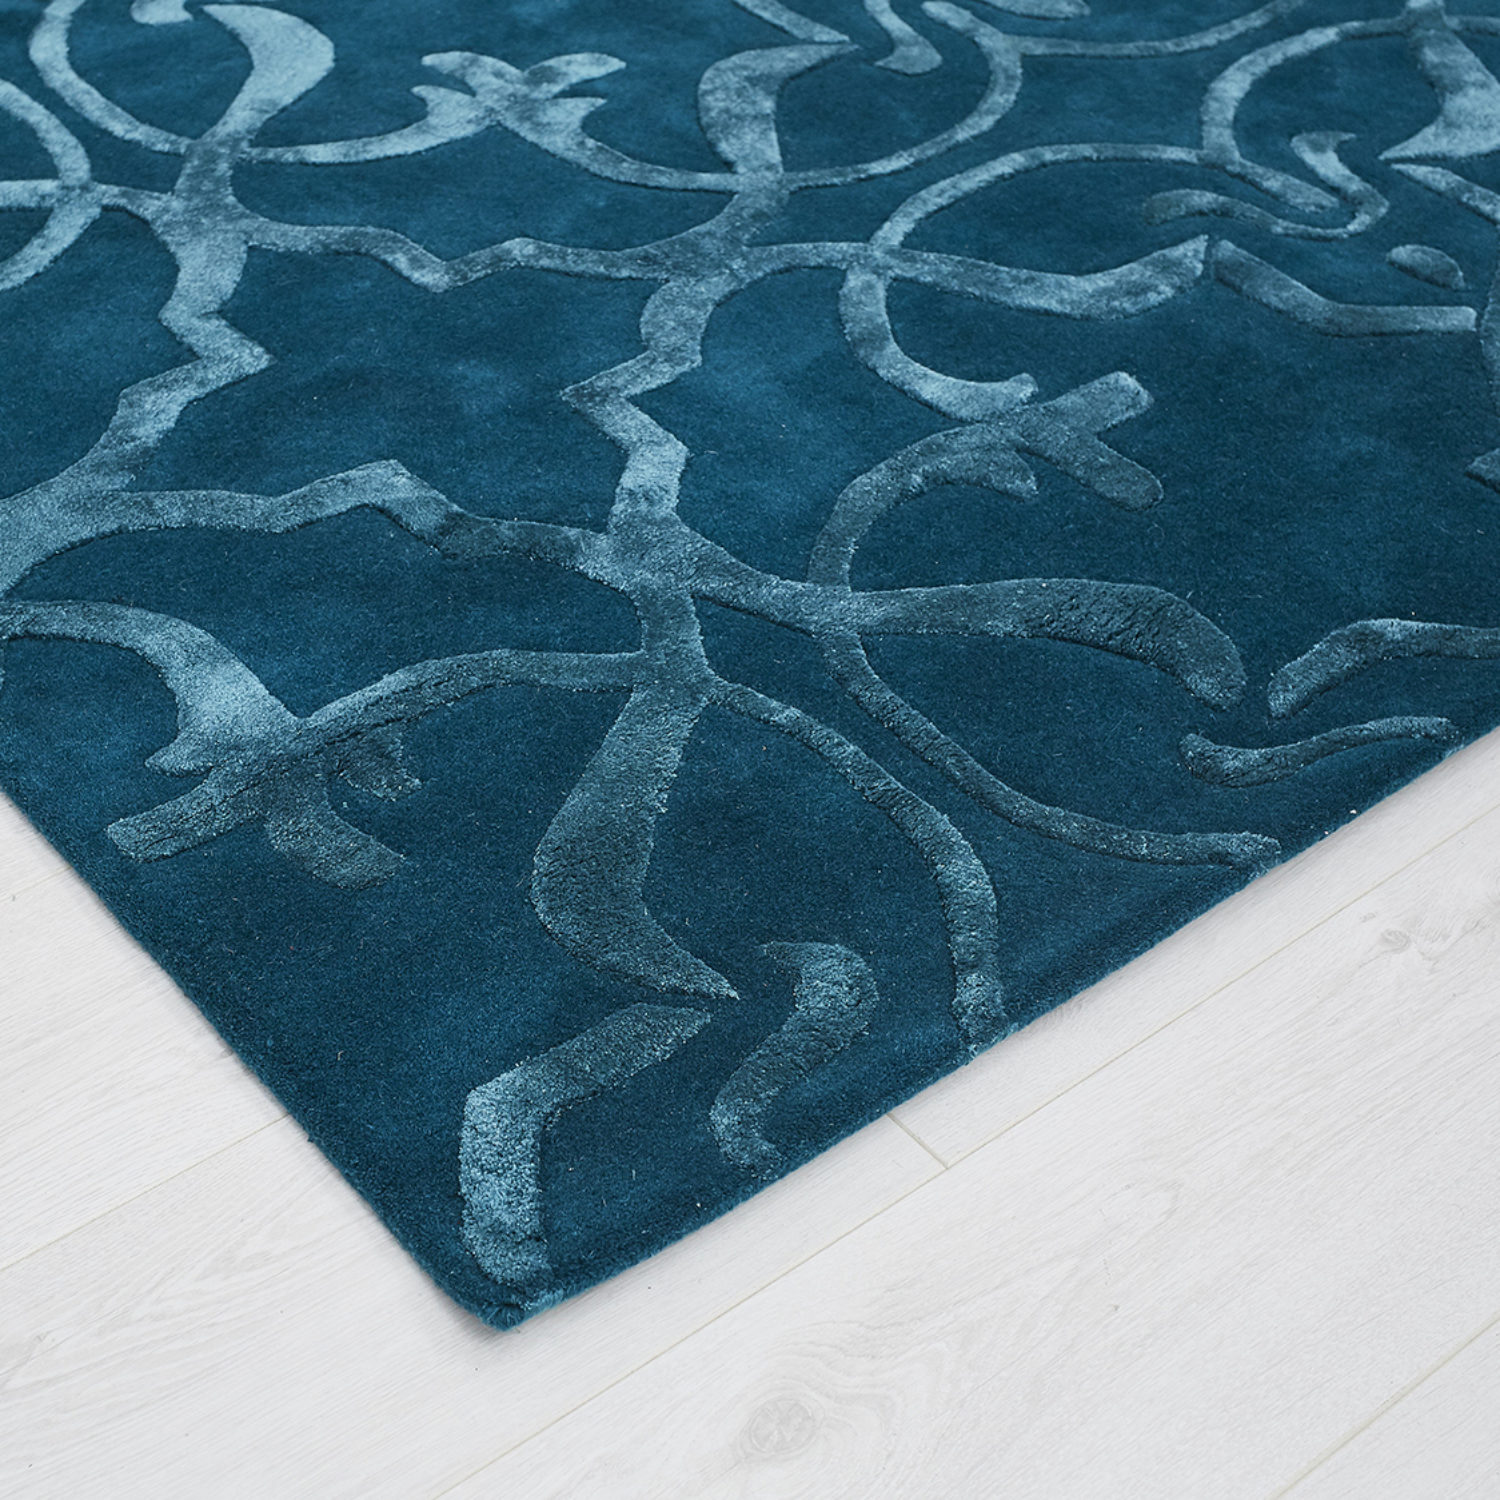 A delightful rug inspired by the hidden treasures discovered in property restoration